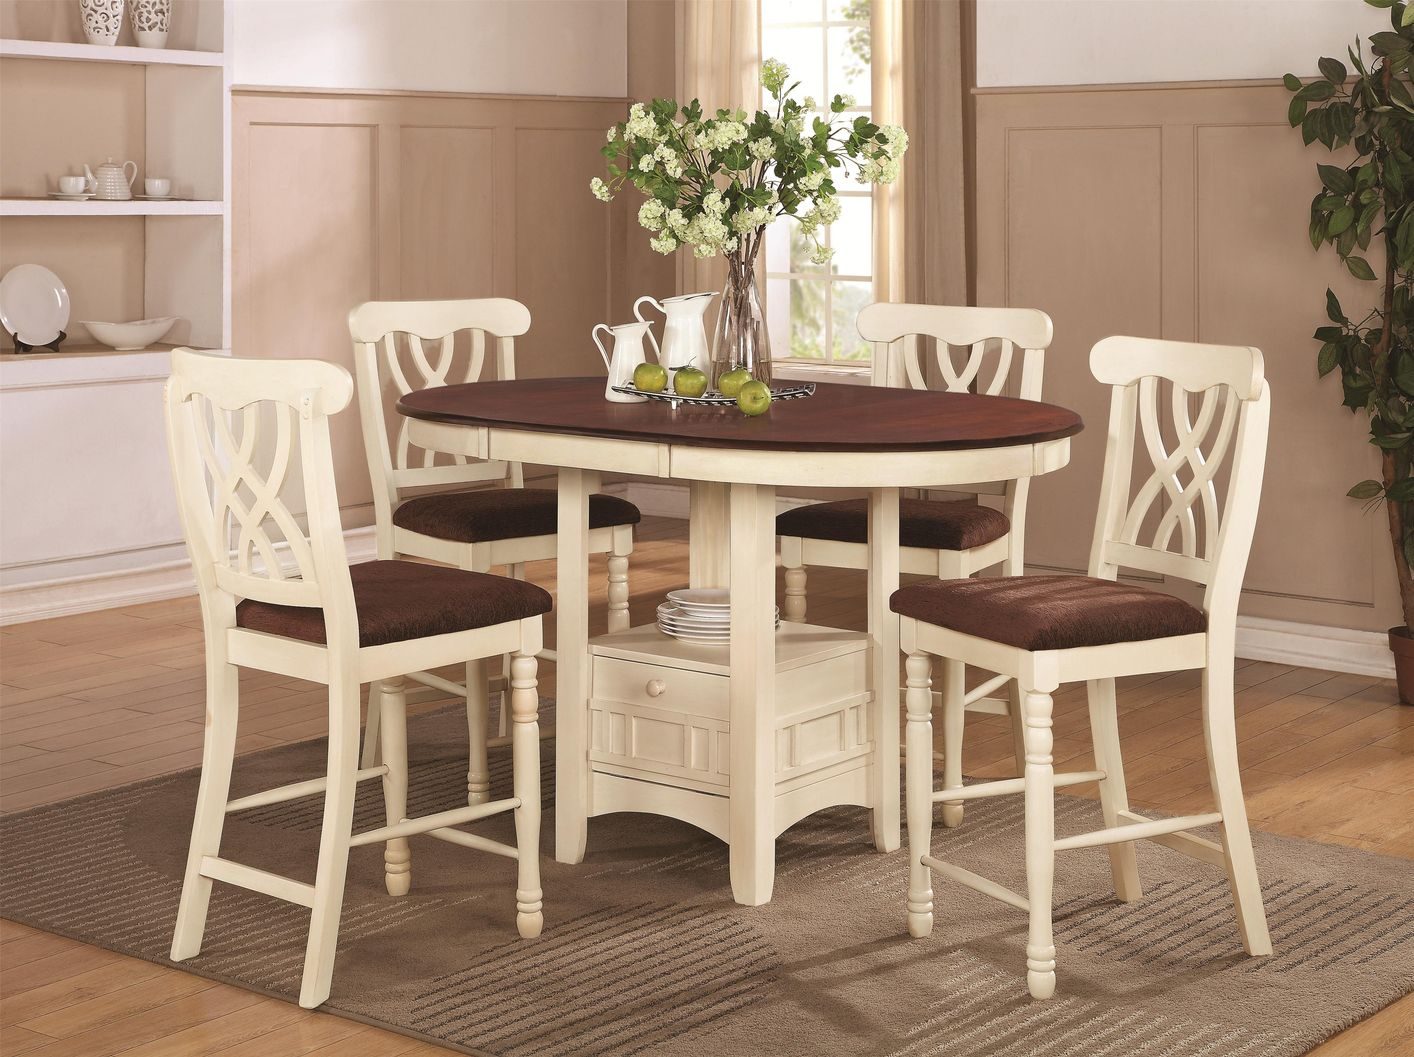 Addison White And Cherry Wood Pub Table Set & Addison White And Cherry Wood Pub Table Set - Steal-A-Sofa Furniture ...